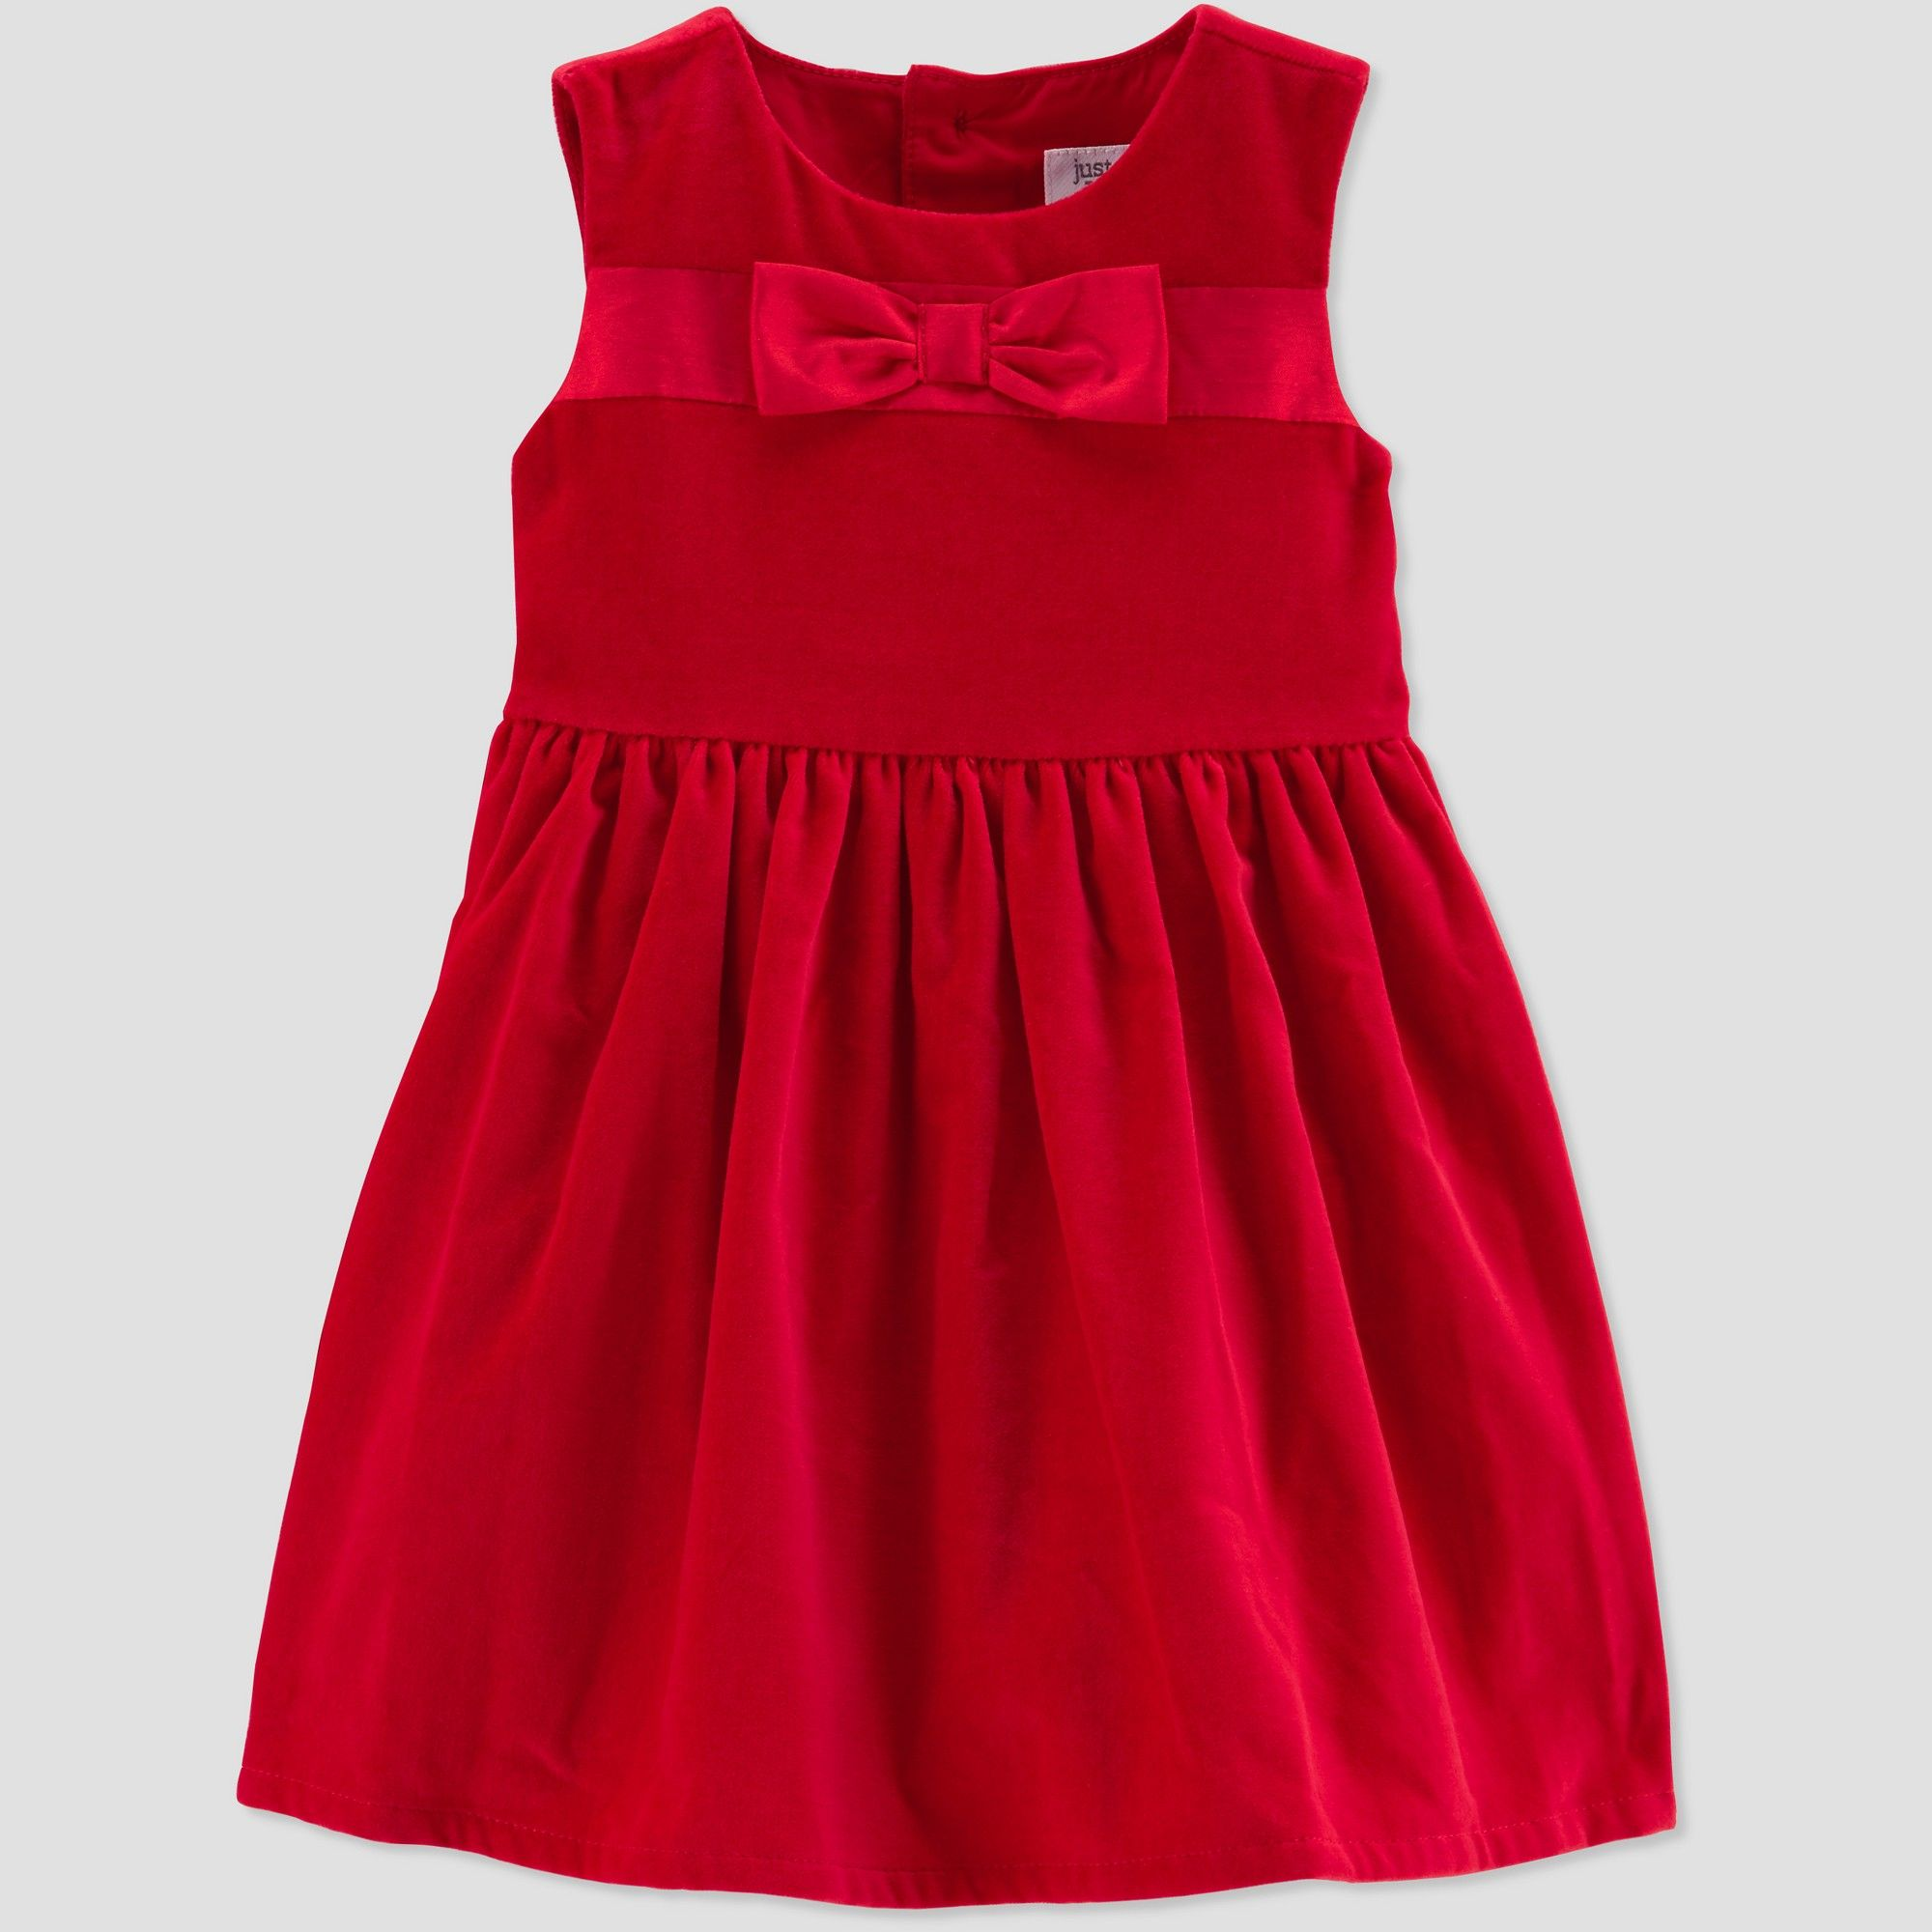 8f328e13b217 Toddler Girls' Bow Holiday Dressy Dress - Just One You made by carter's Red  3T